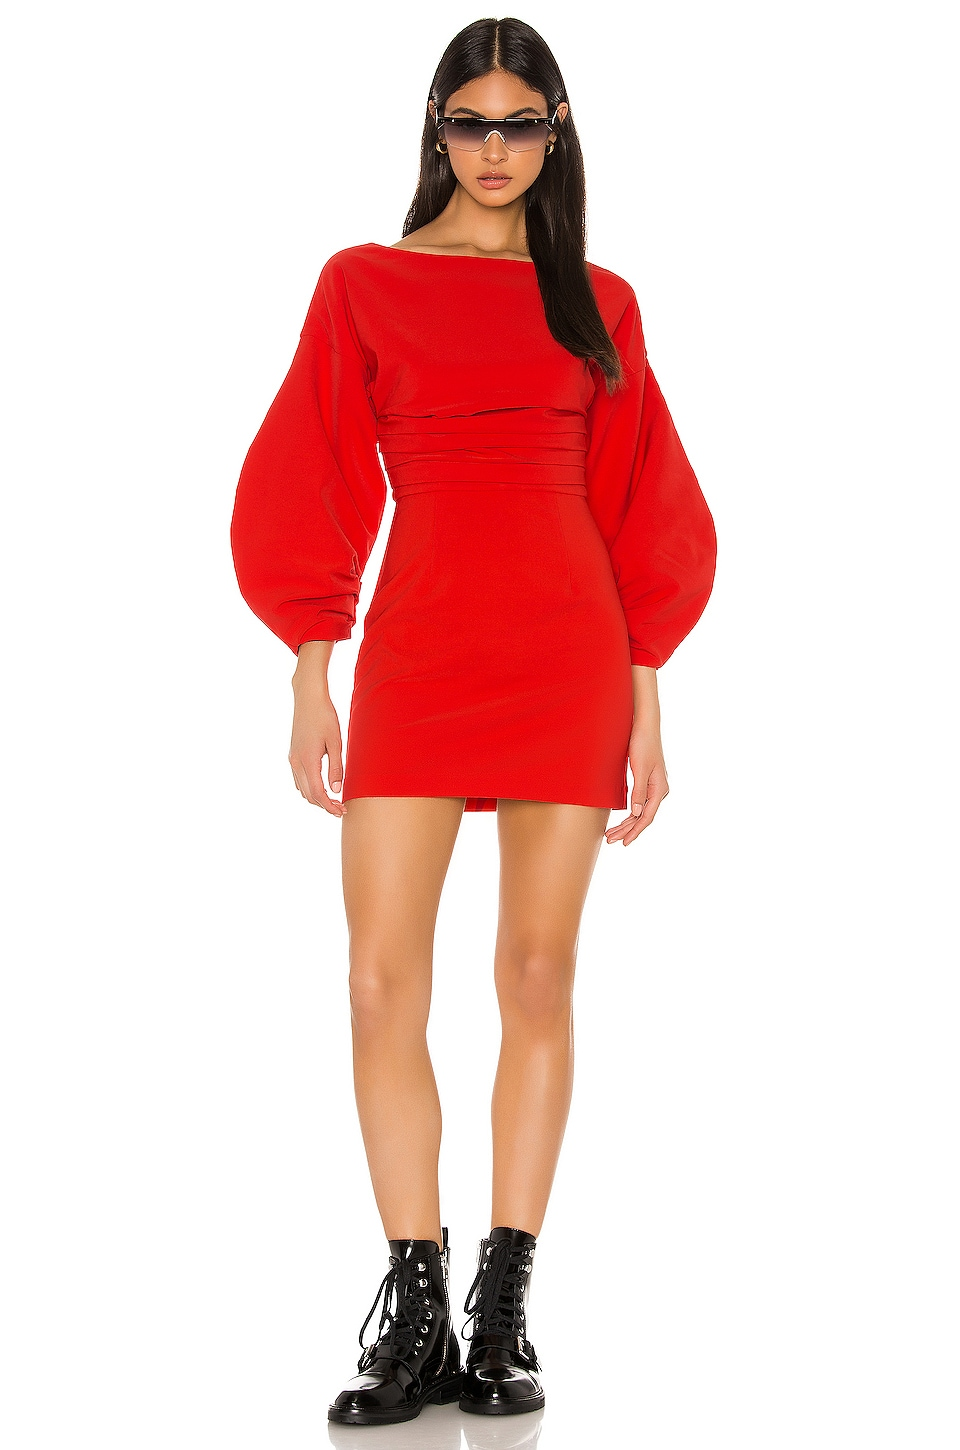 h:ours Cristiano Mini Dress in Fiery Red